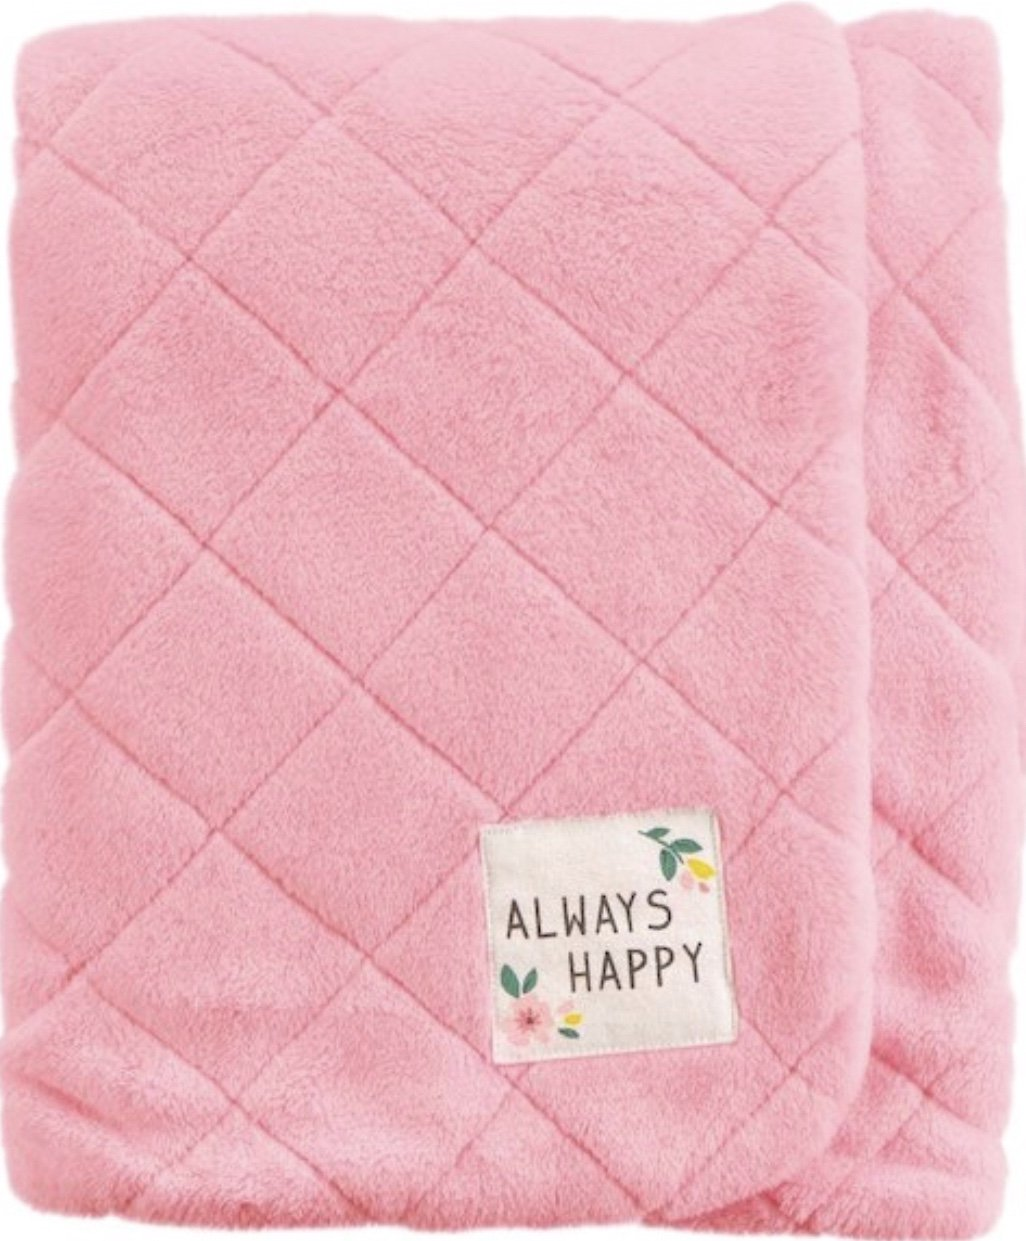 Carters Baby Girls Toddler Blankets D06g030